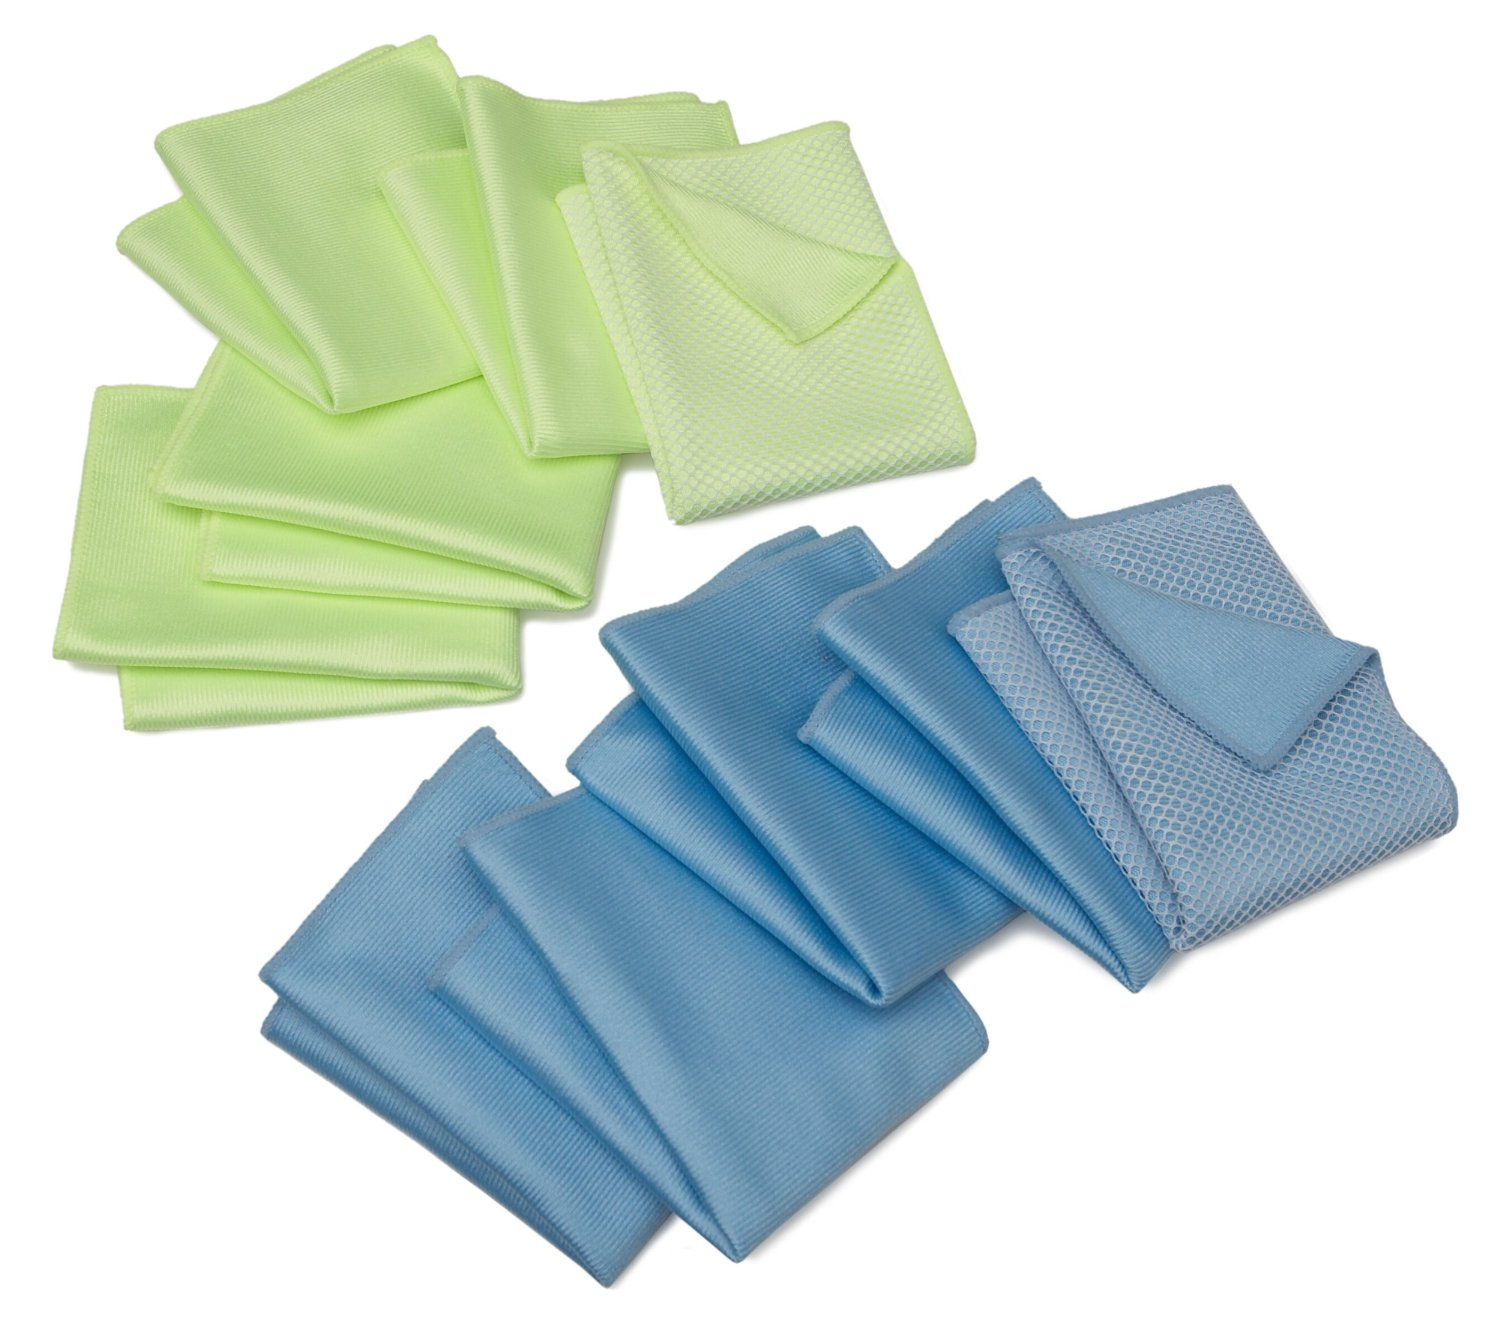 Zwipes Microfiber Windshield & Glass Cloth 10-Pack